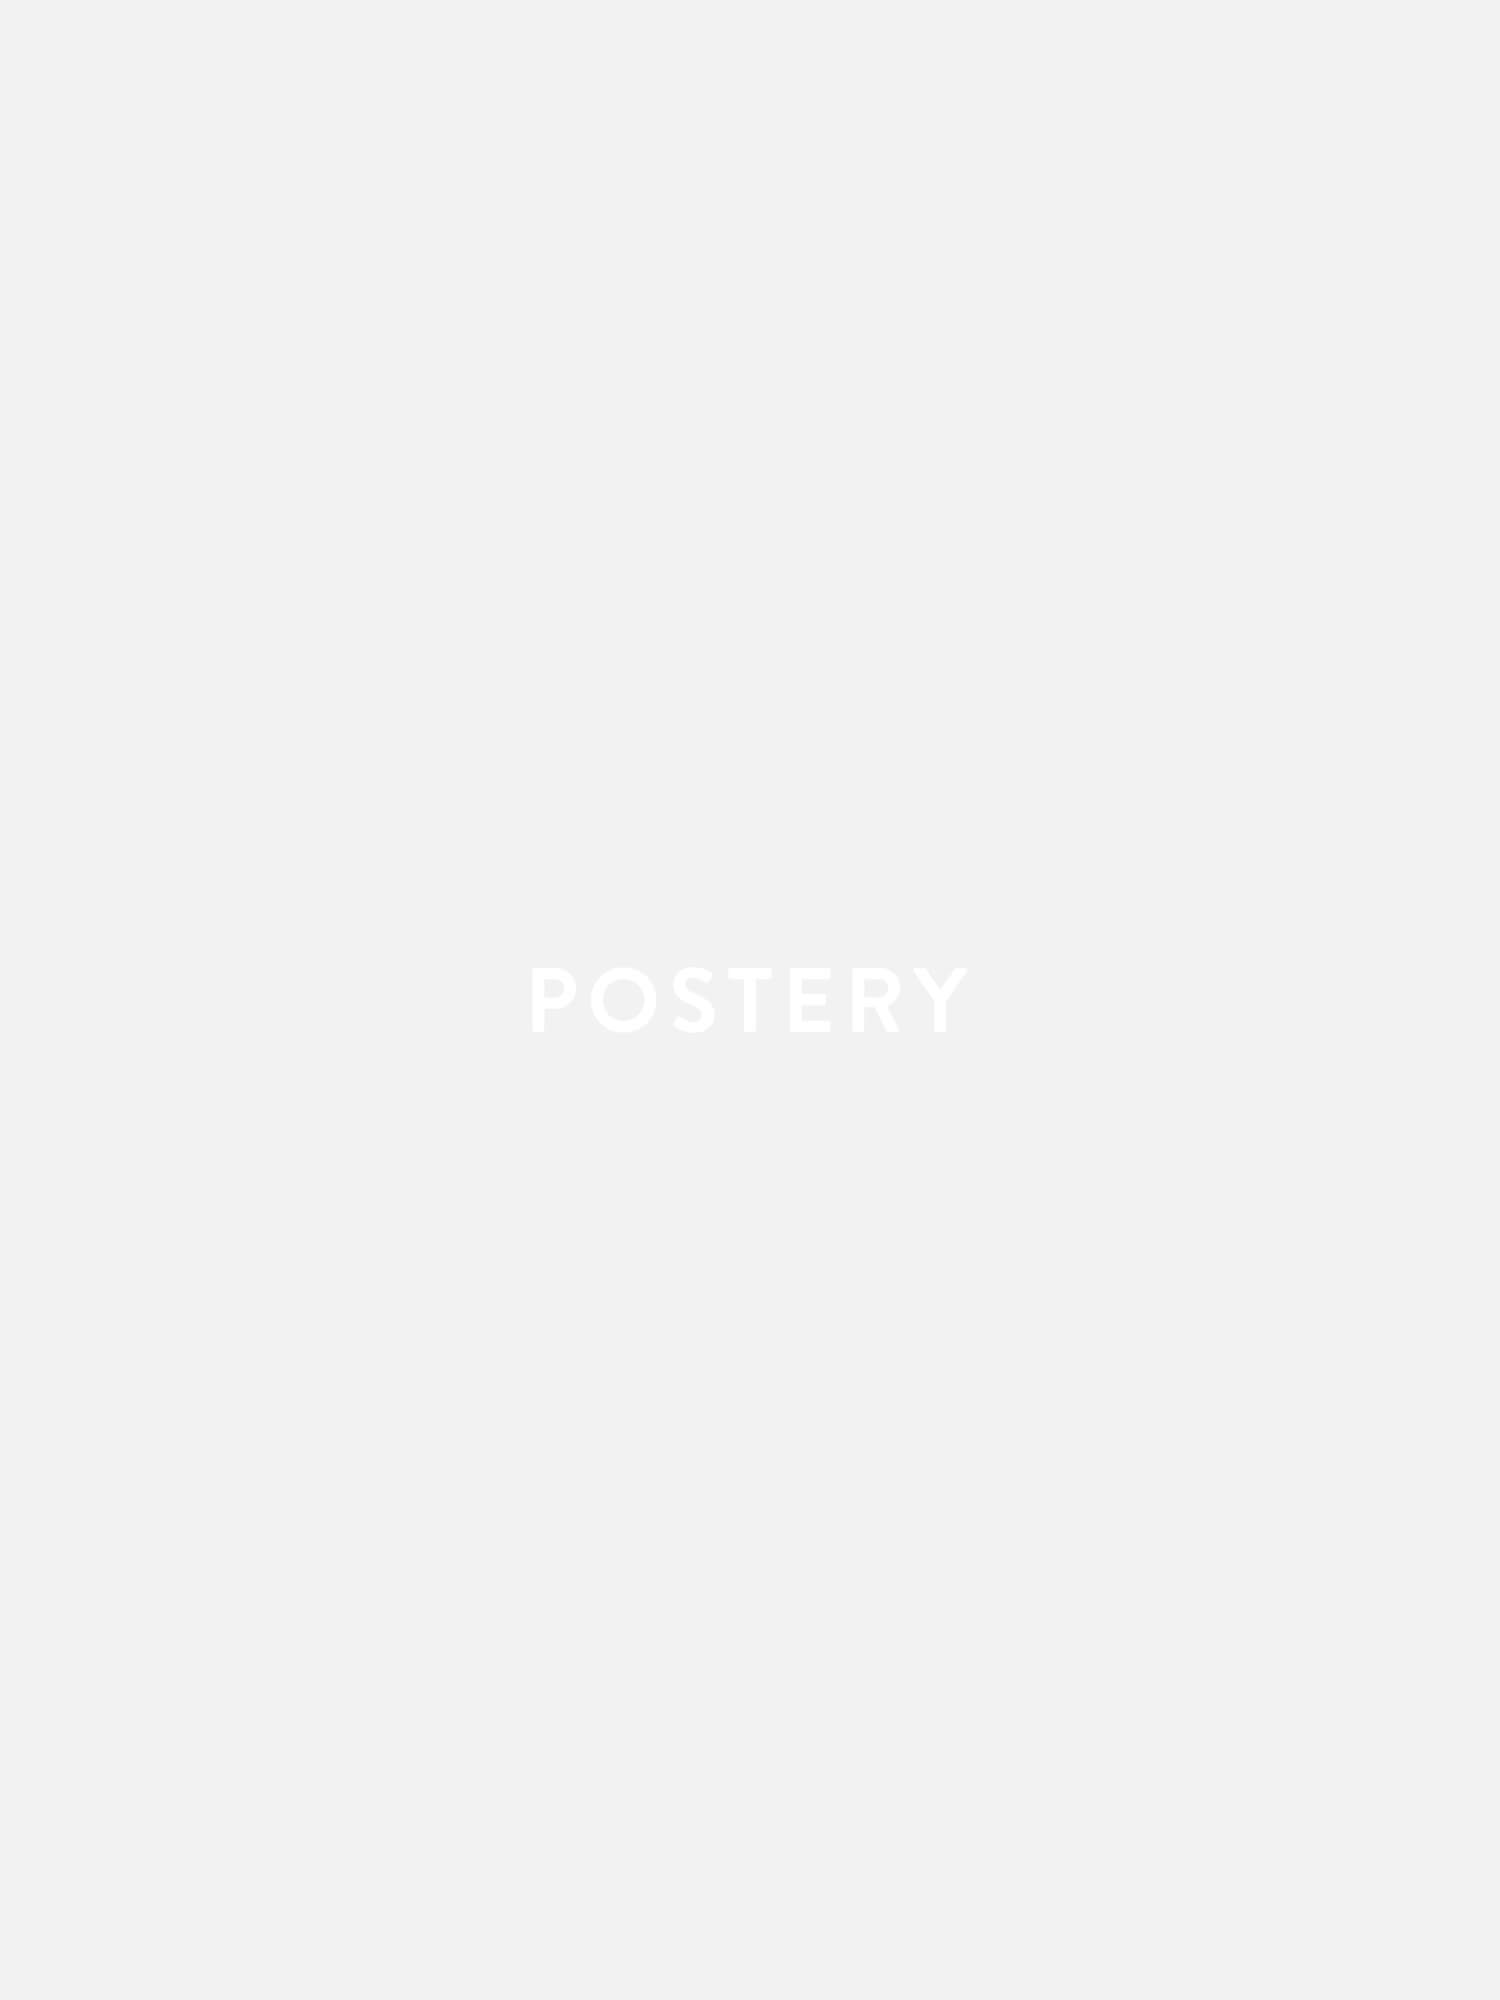 Black and White Stair Poster